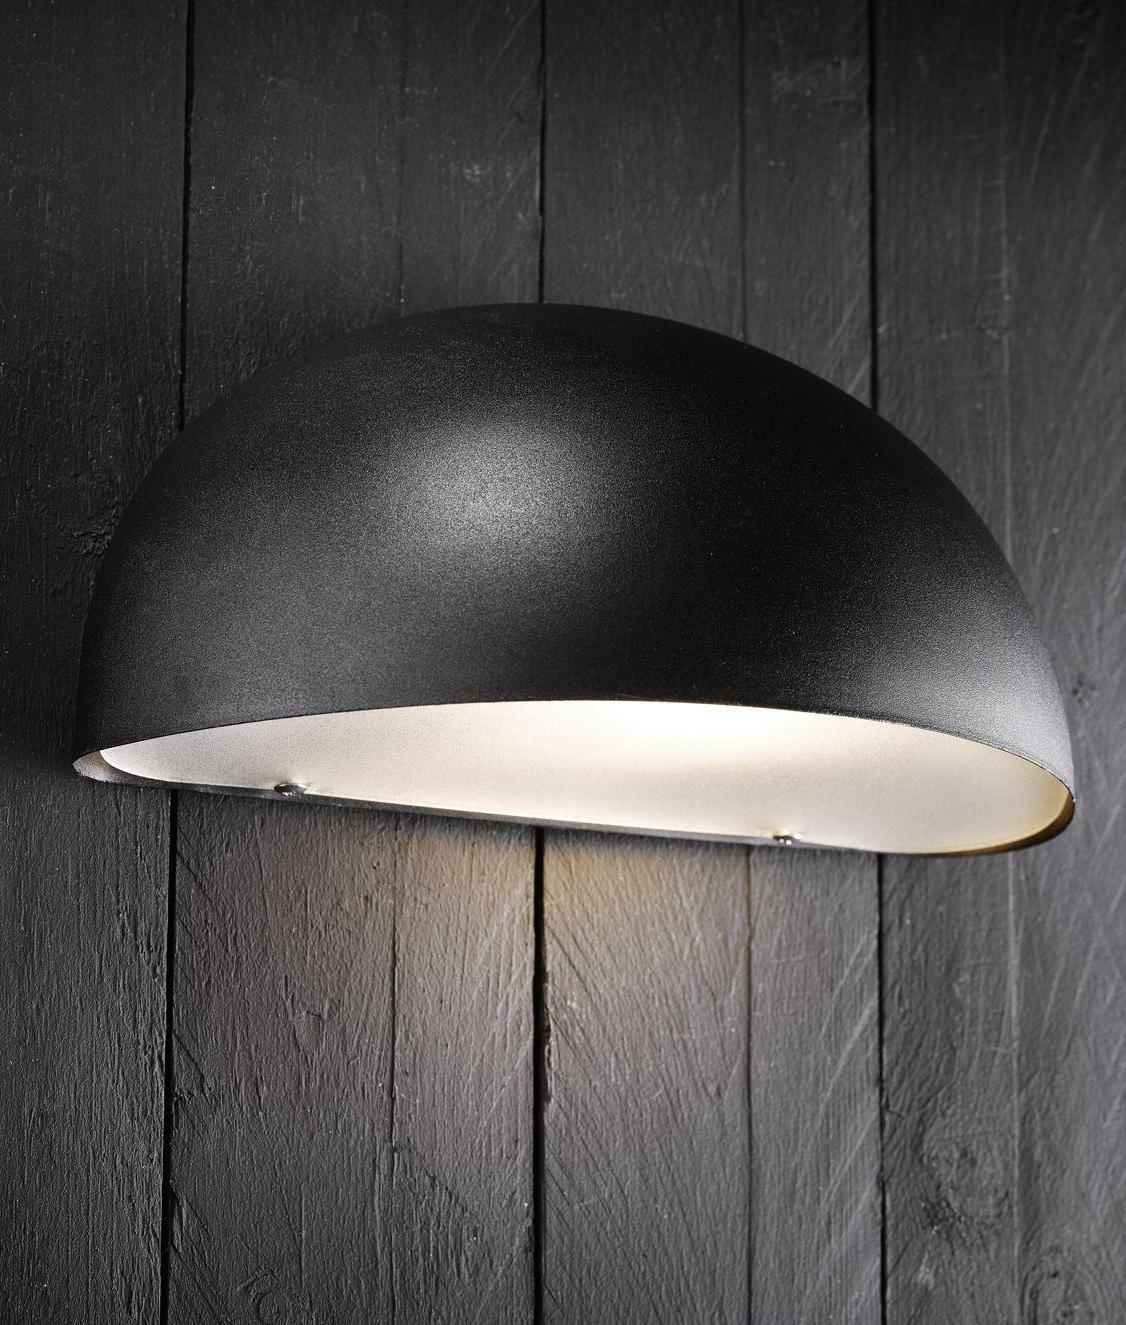 Low Glare Exterior Wall Light 4 Finishes